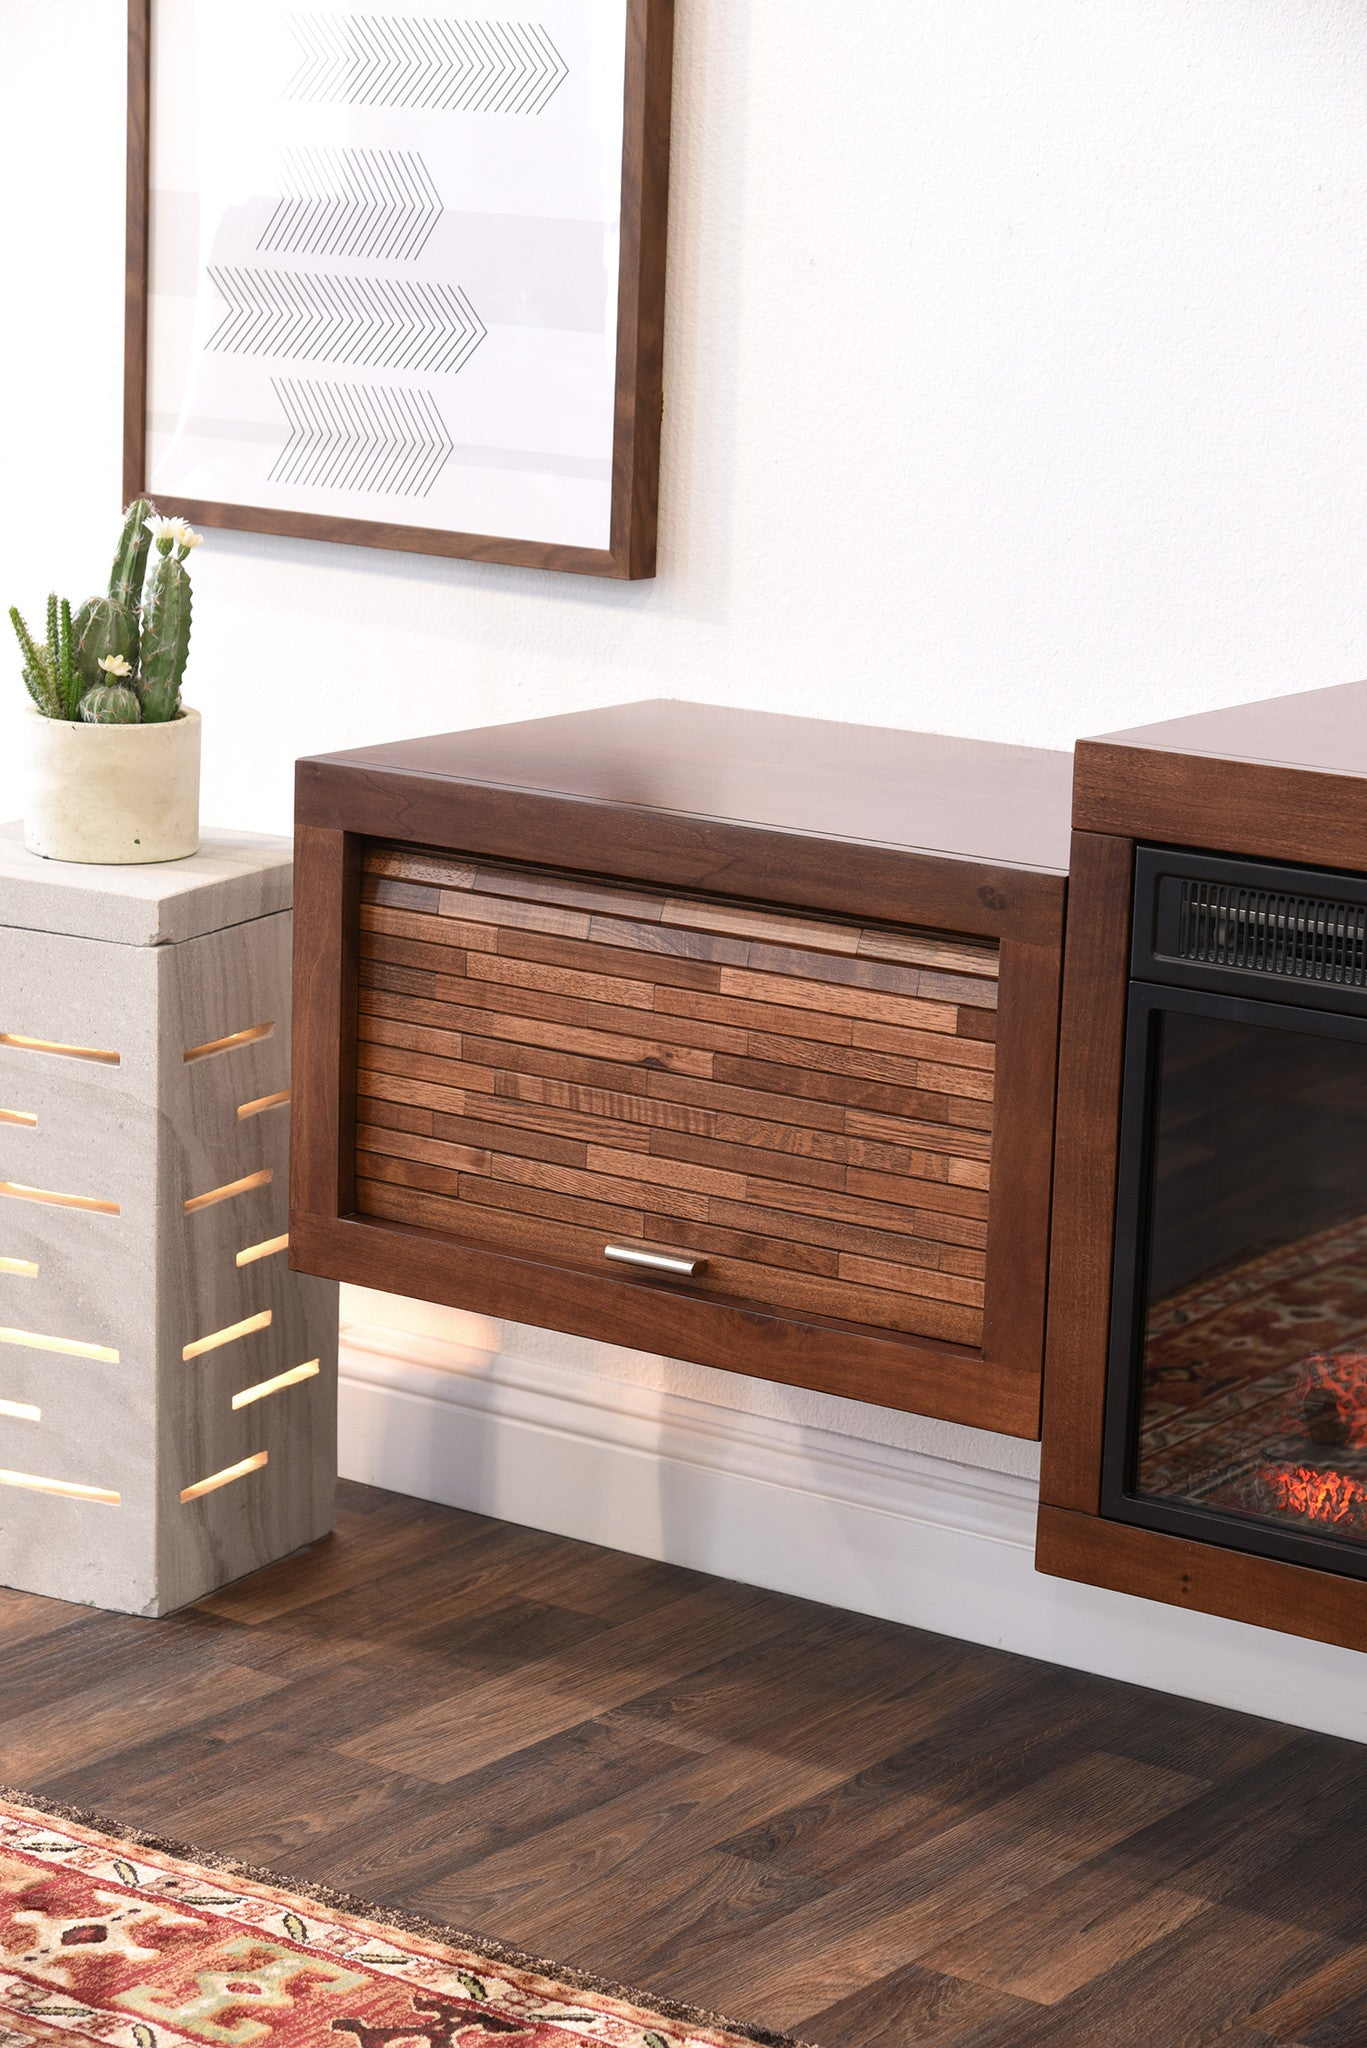 floating tv stand with fireplace  eco geo mocha. floating tv stand with fireplace  eco geo mocha  woodwaves